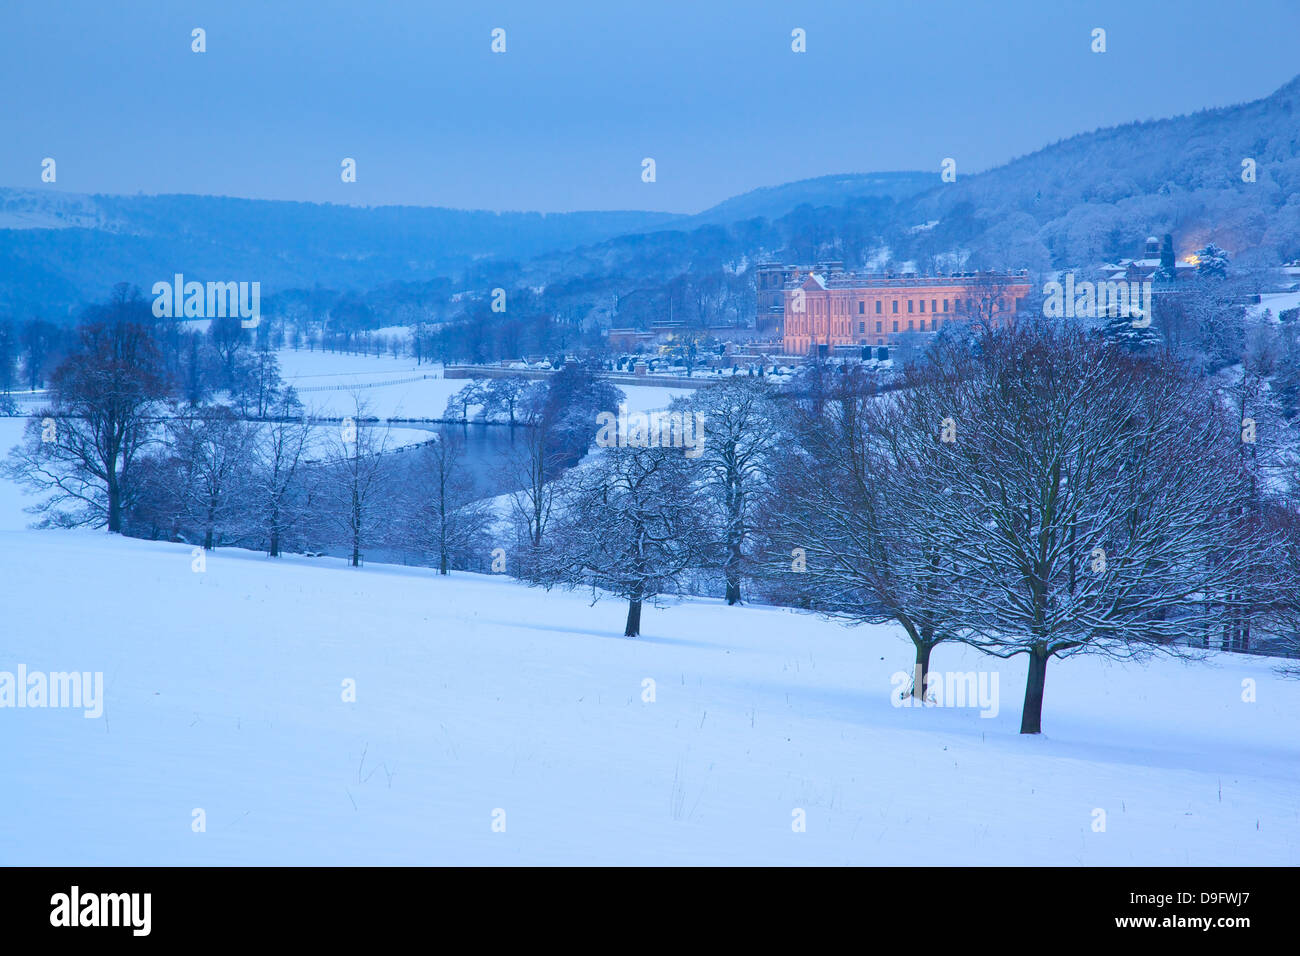 Chatsworth House and snow, Derbyshire Dales, Derbyshire, England, UK - Stock Image